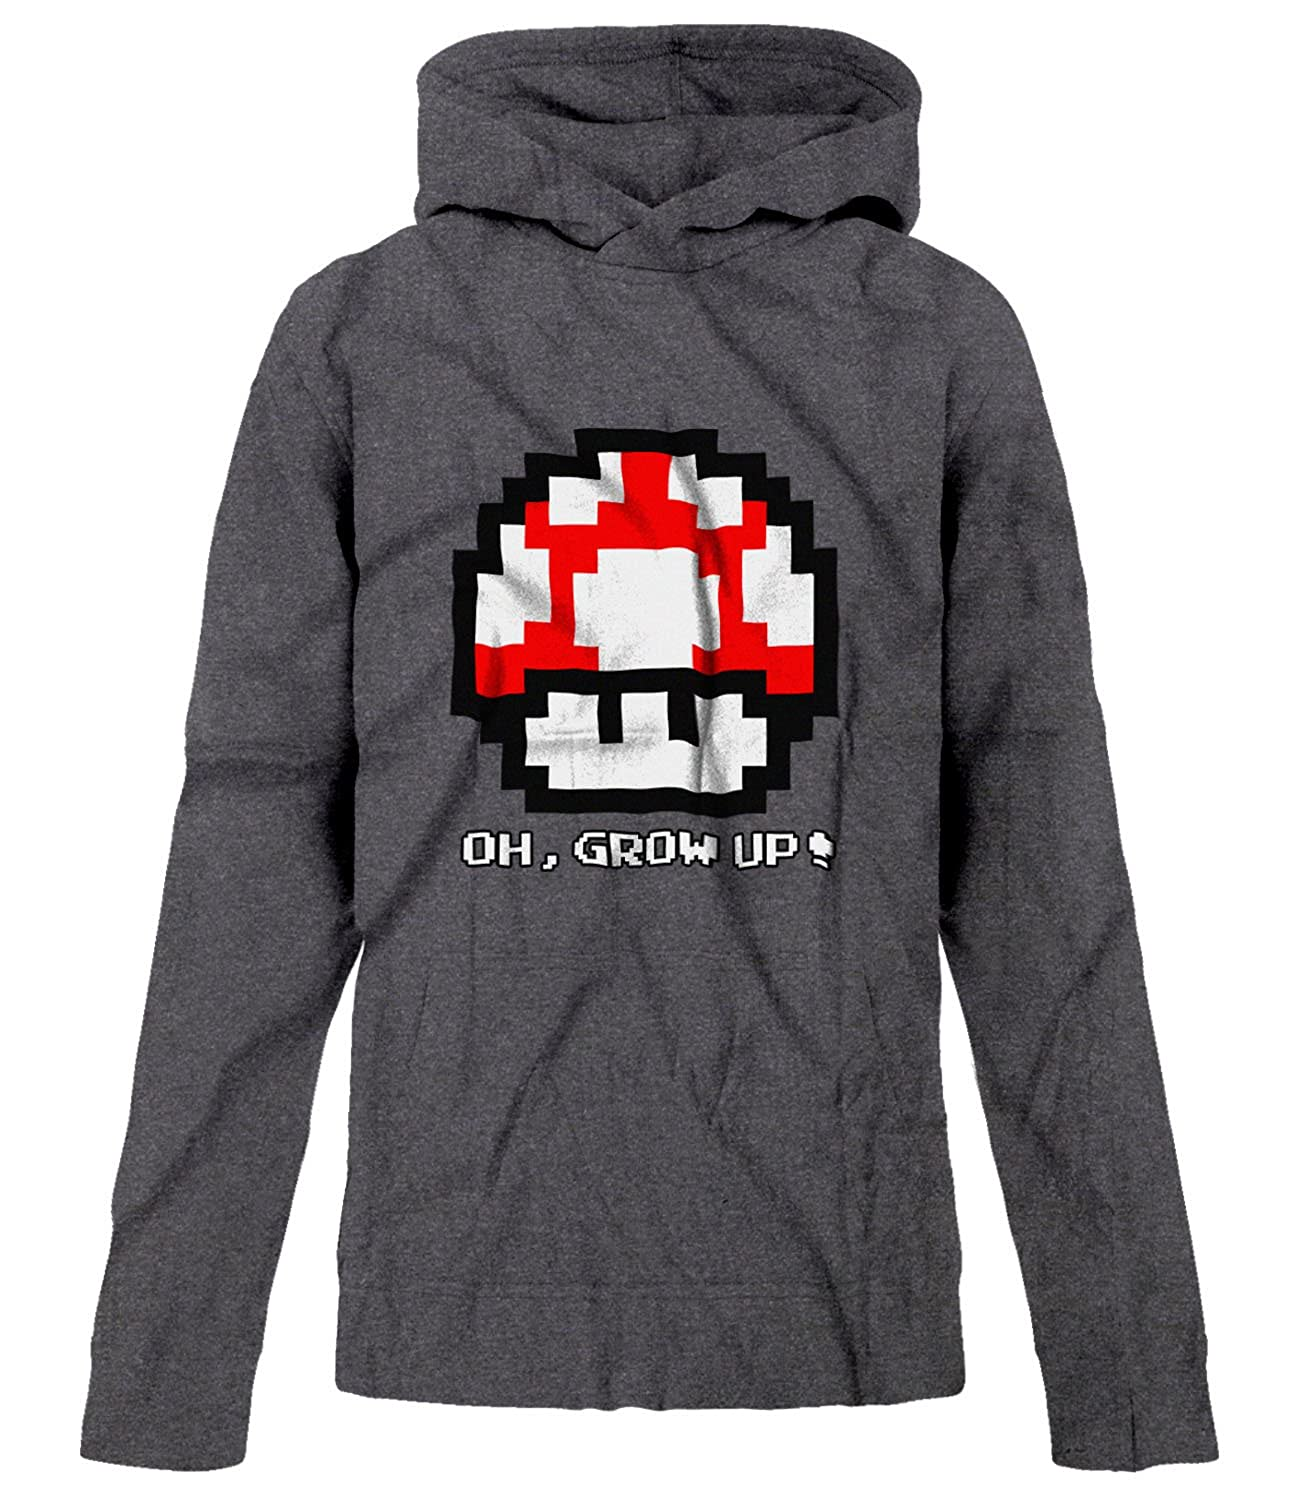 BSW Youth Boys Oh, Grow up! Super Mario Bros Super Mushroom 8-bit Hoodie 1243-1HPY